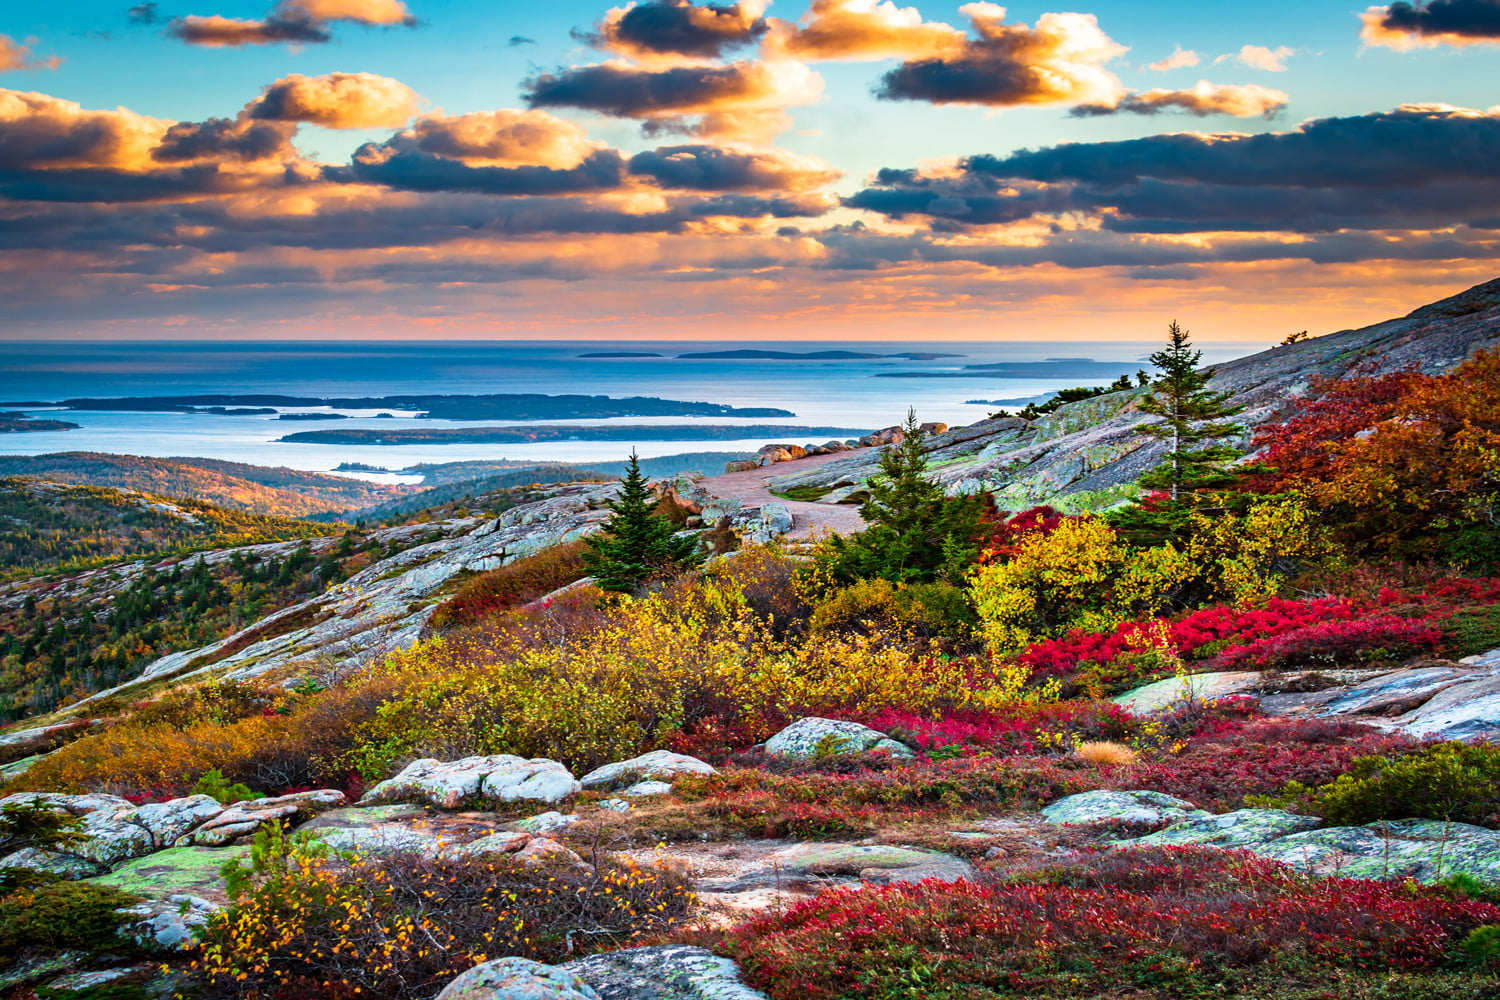 5 Best Hikes for Fall to Enjoy the Burst of Autumn Colors